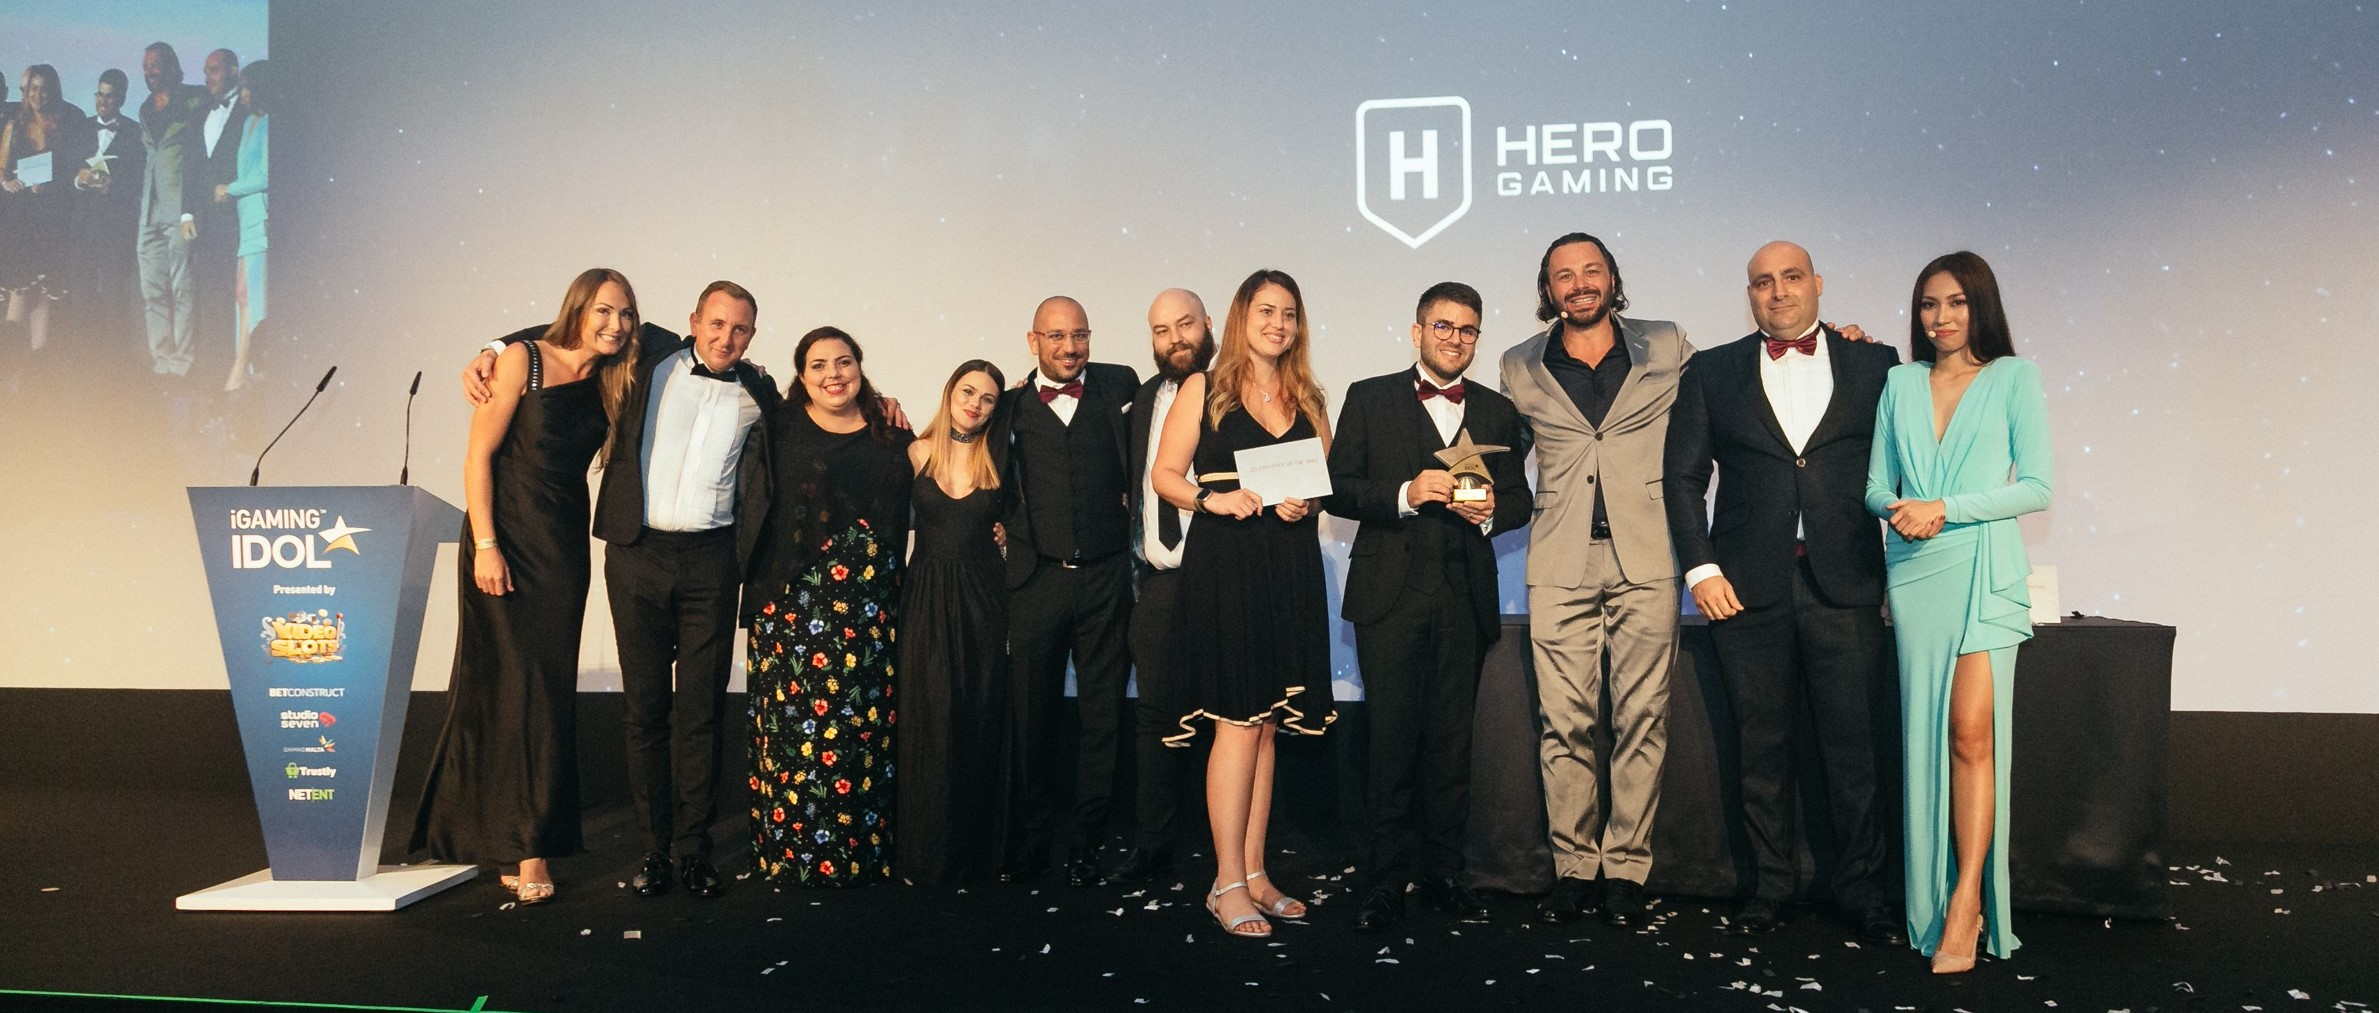 Hero Gaming wins the iGaming Idol 2019 Employer of the Year Award